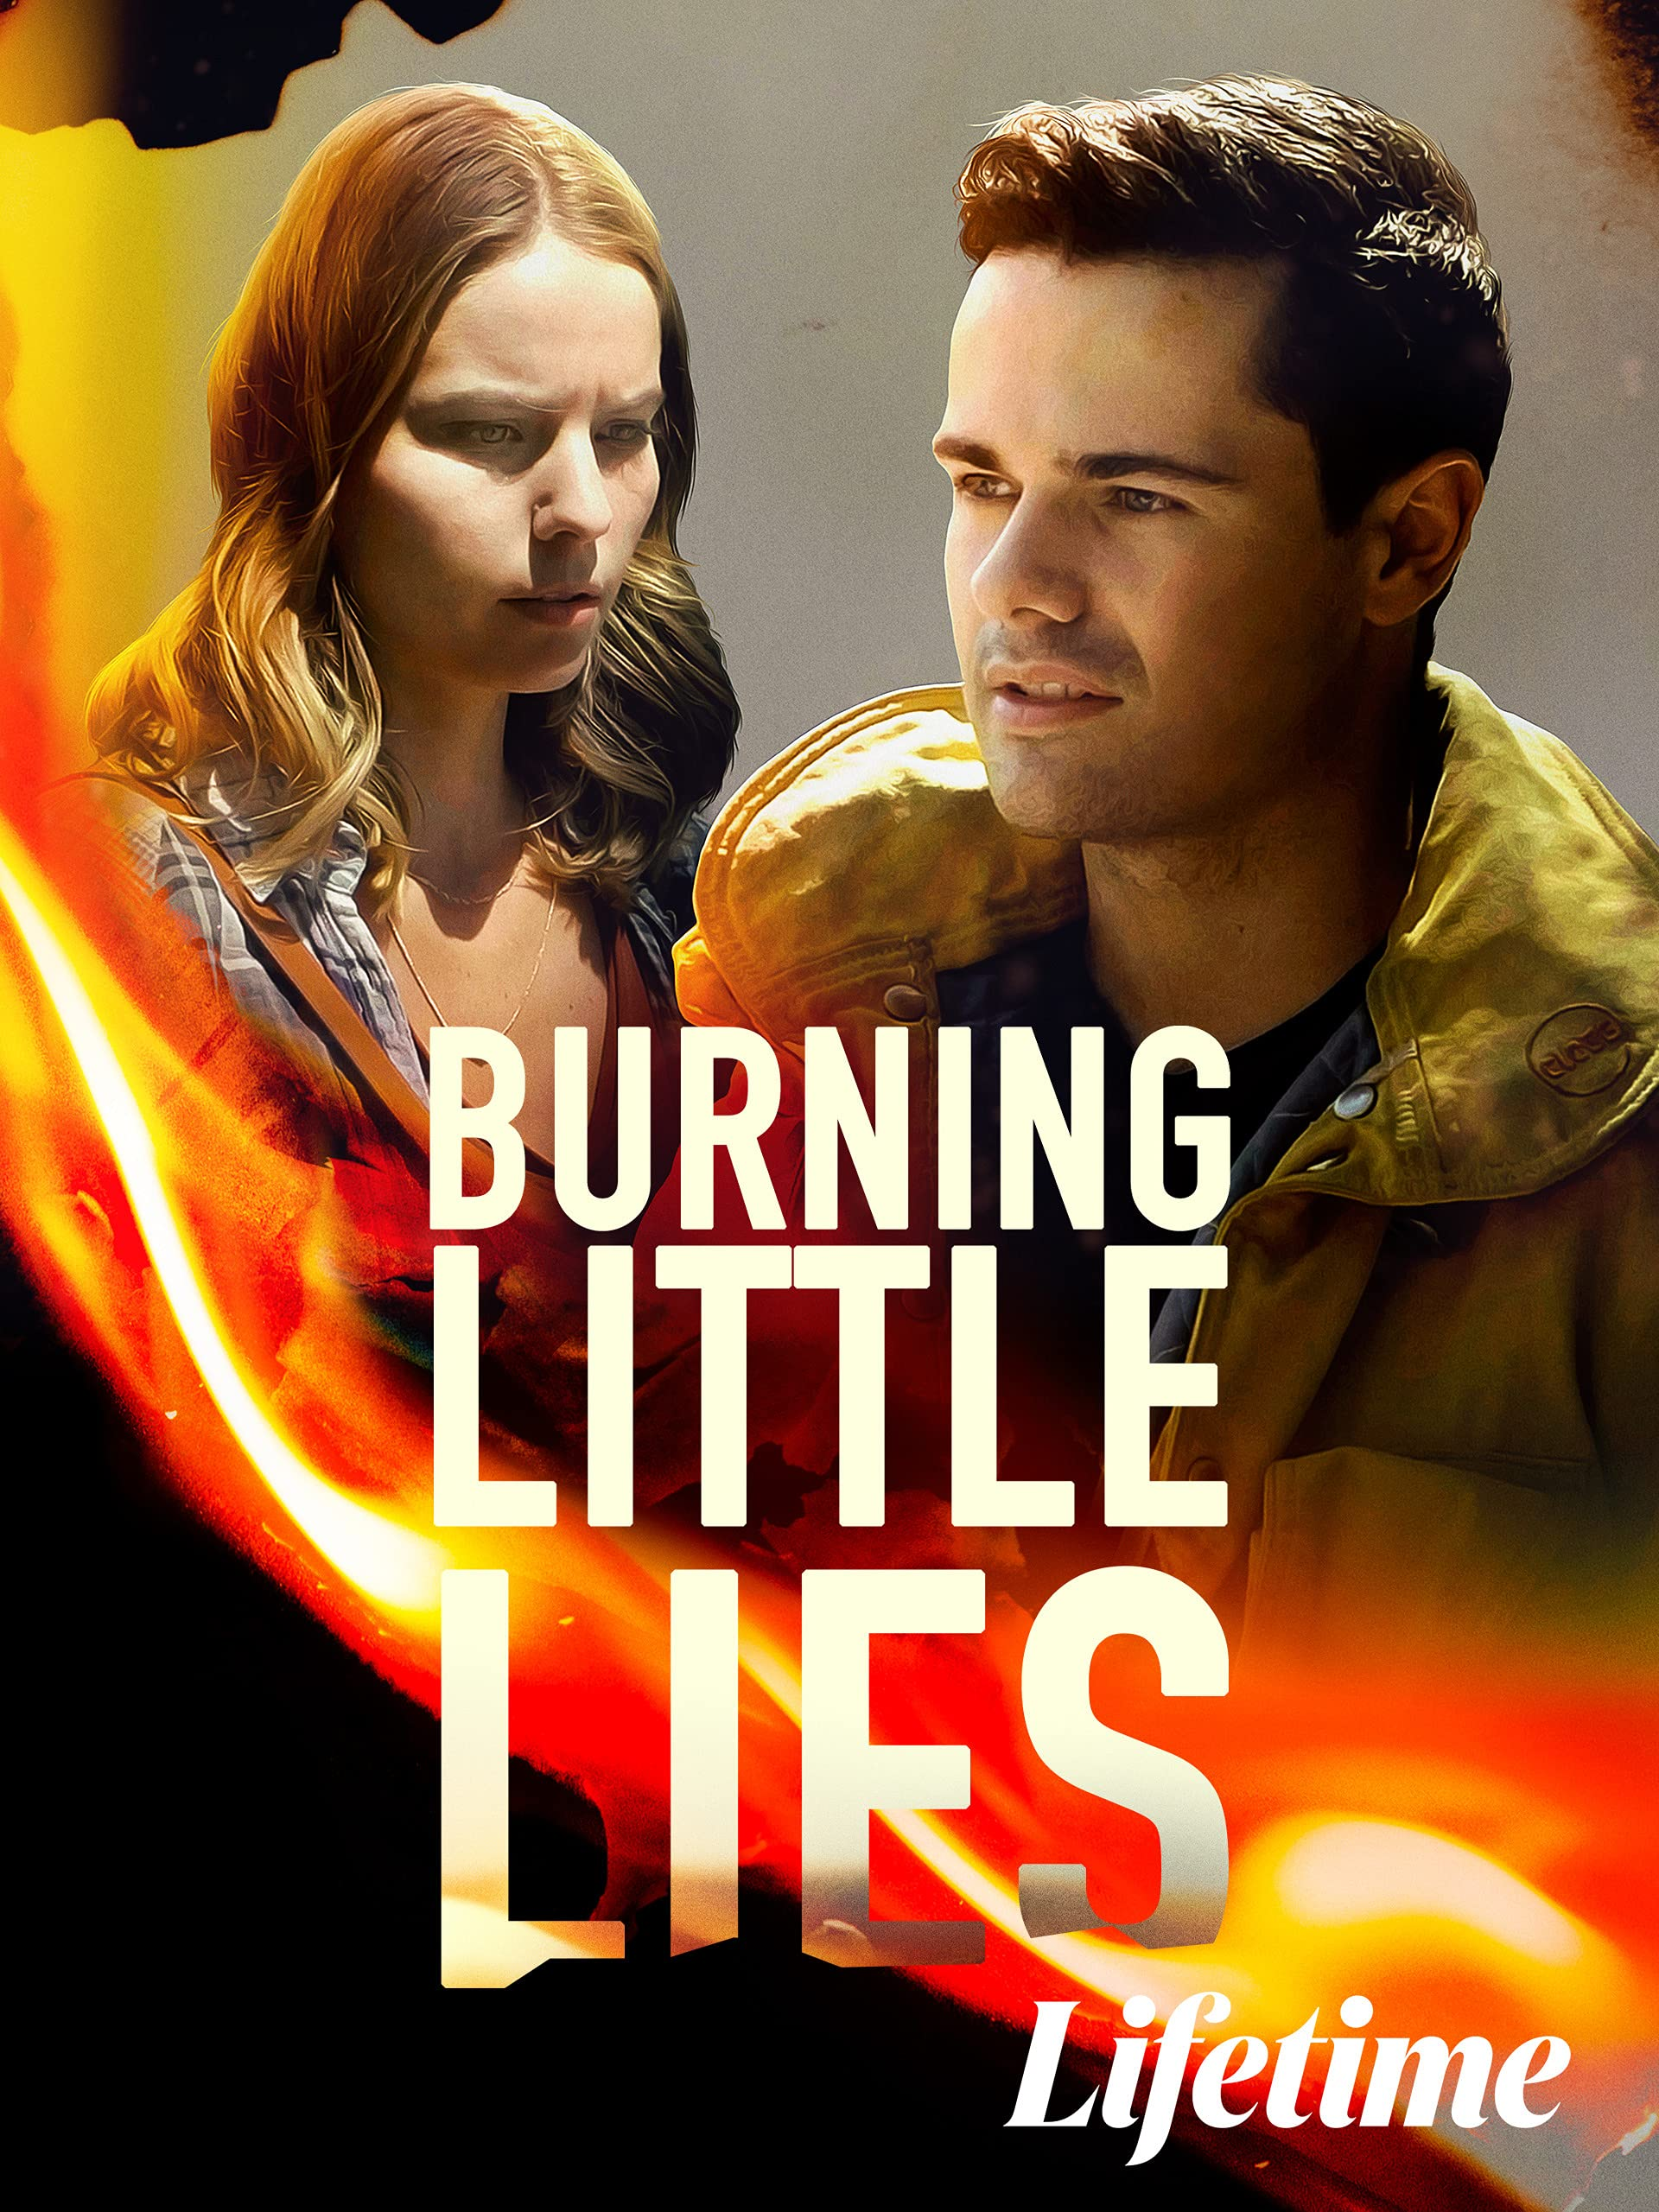 Download Burning Little Lies (2021) Tamil Dubbed (Voice Over) & English [Dual Audio] WebRip 720p [1XBET] Full Movie Online On 1xcinema.com